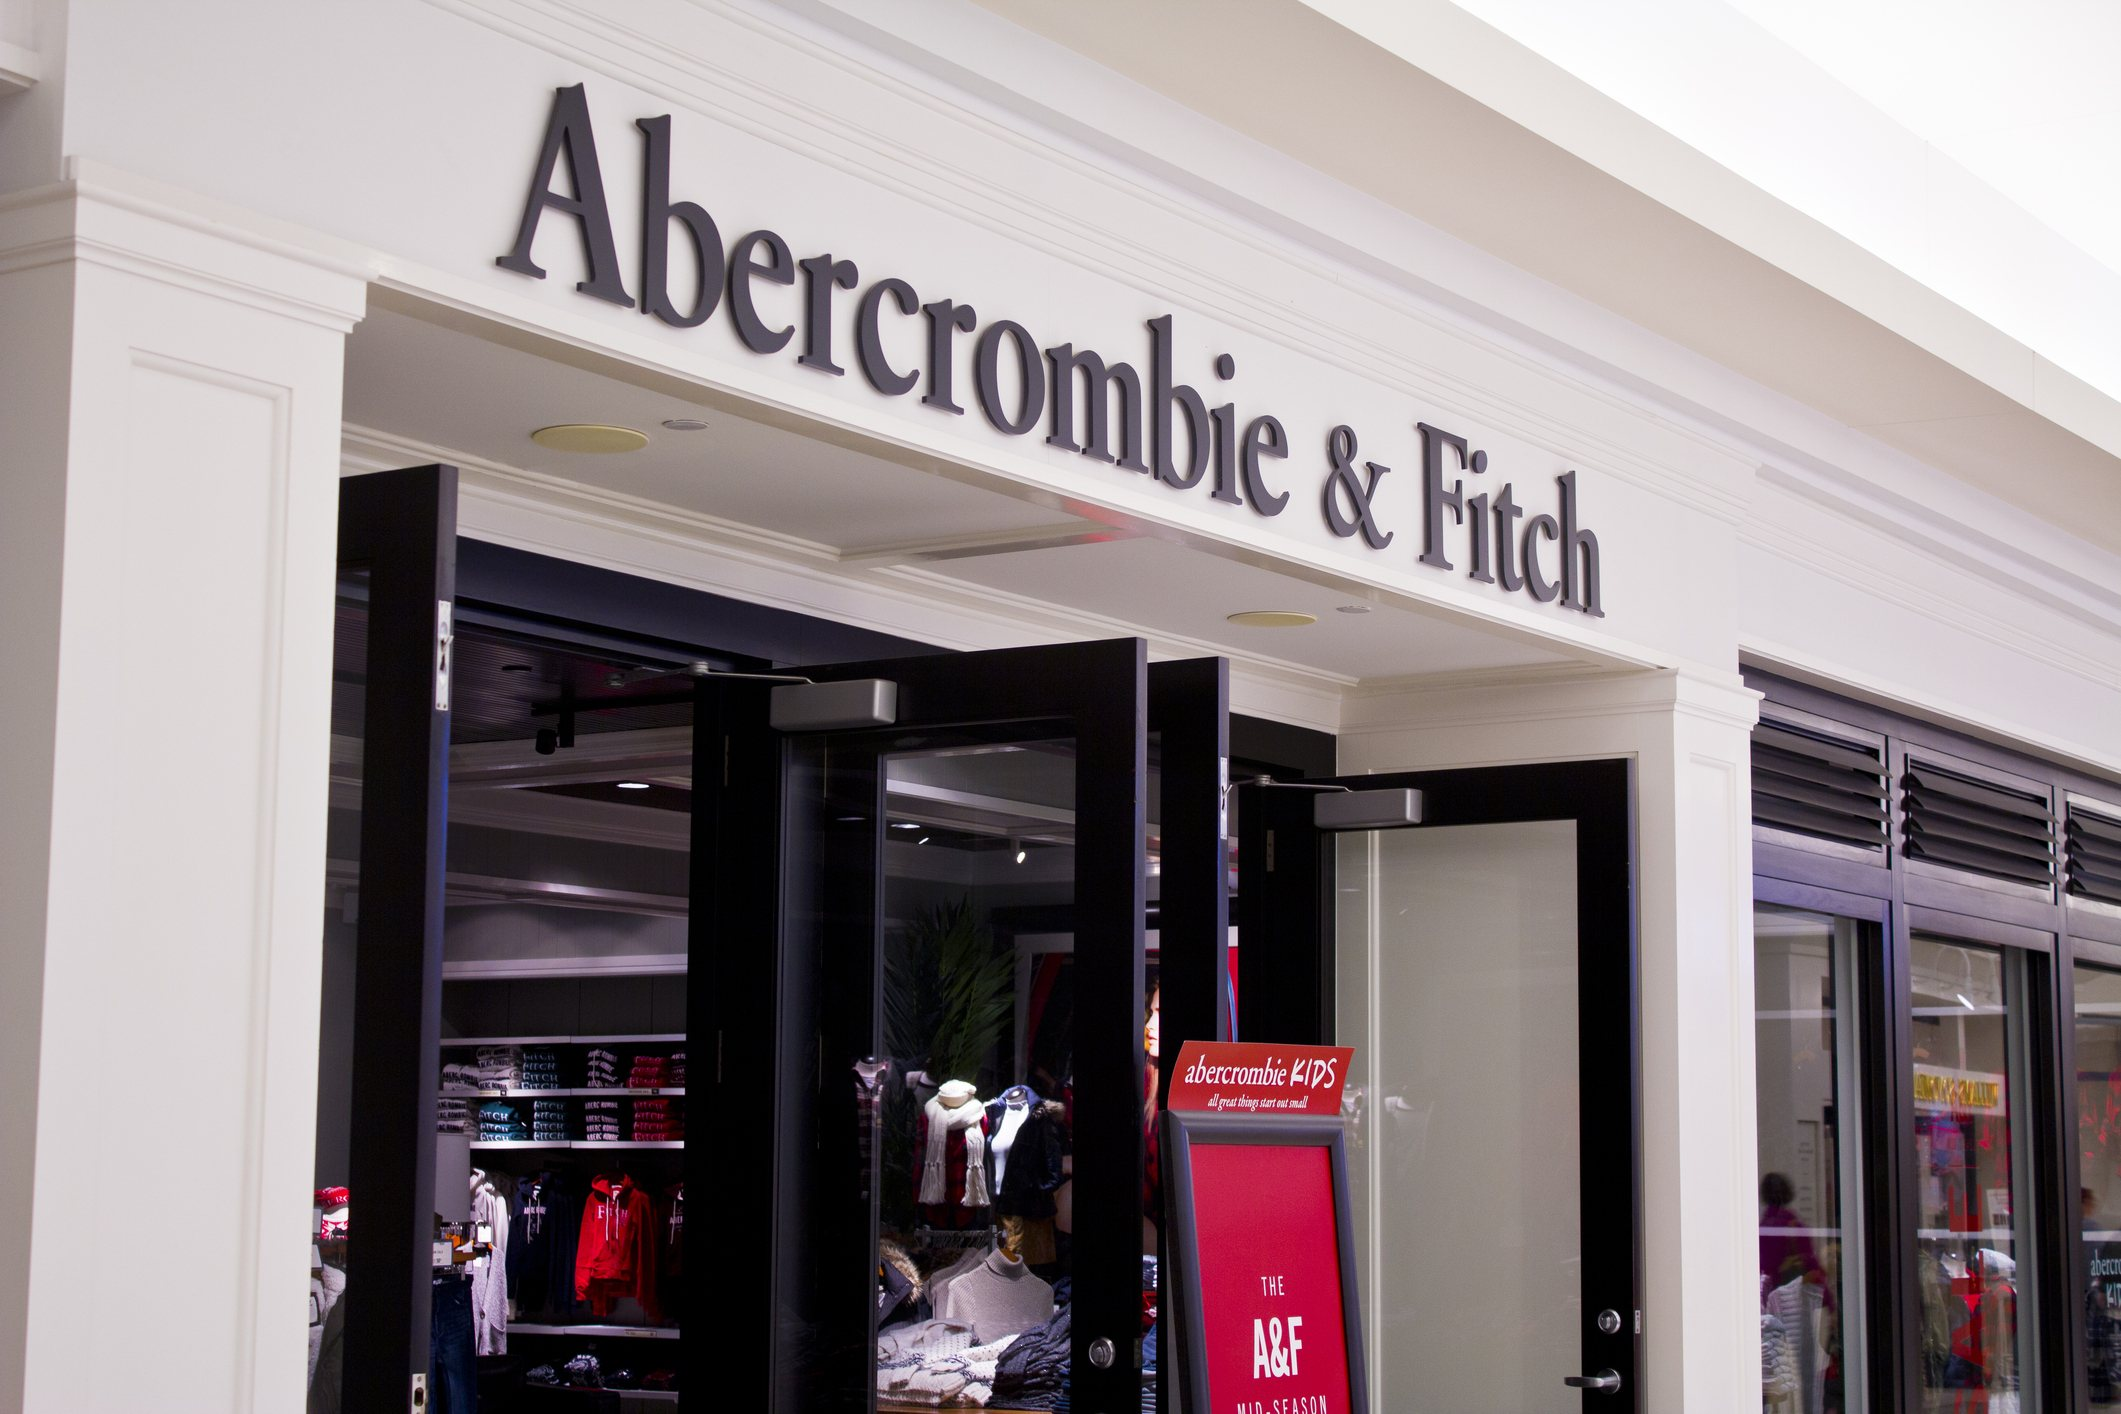 Abercrombie & Fitch Clothing